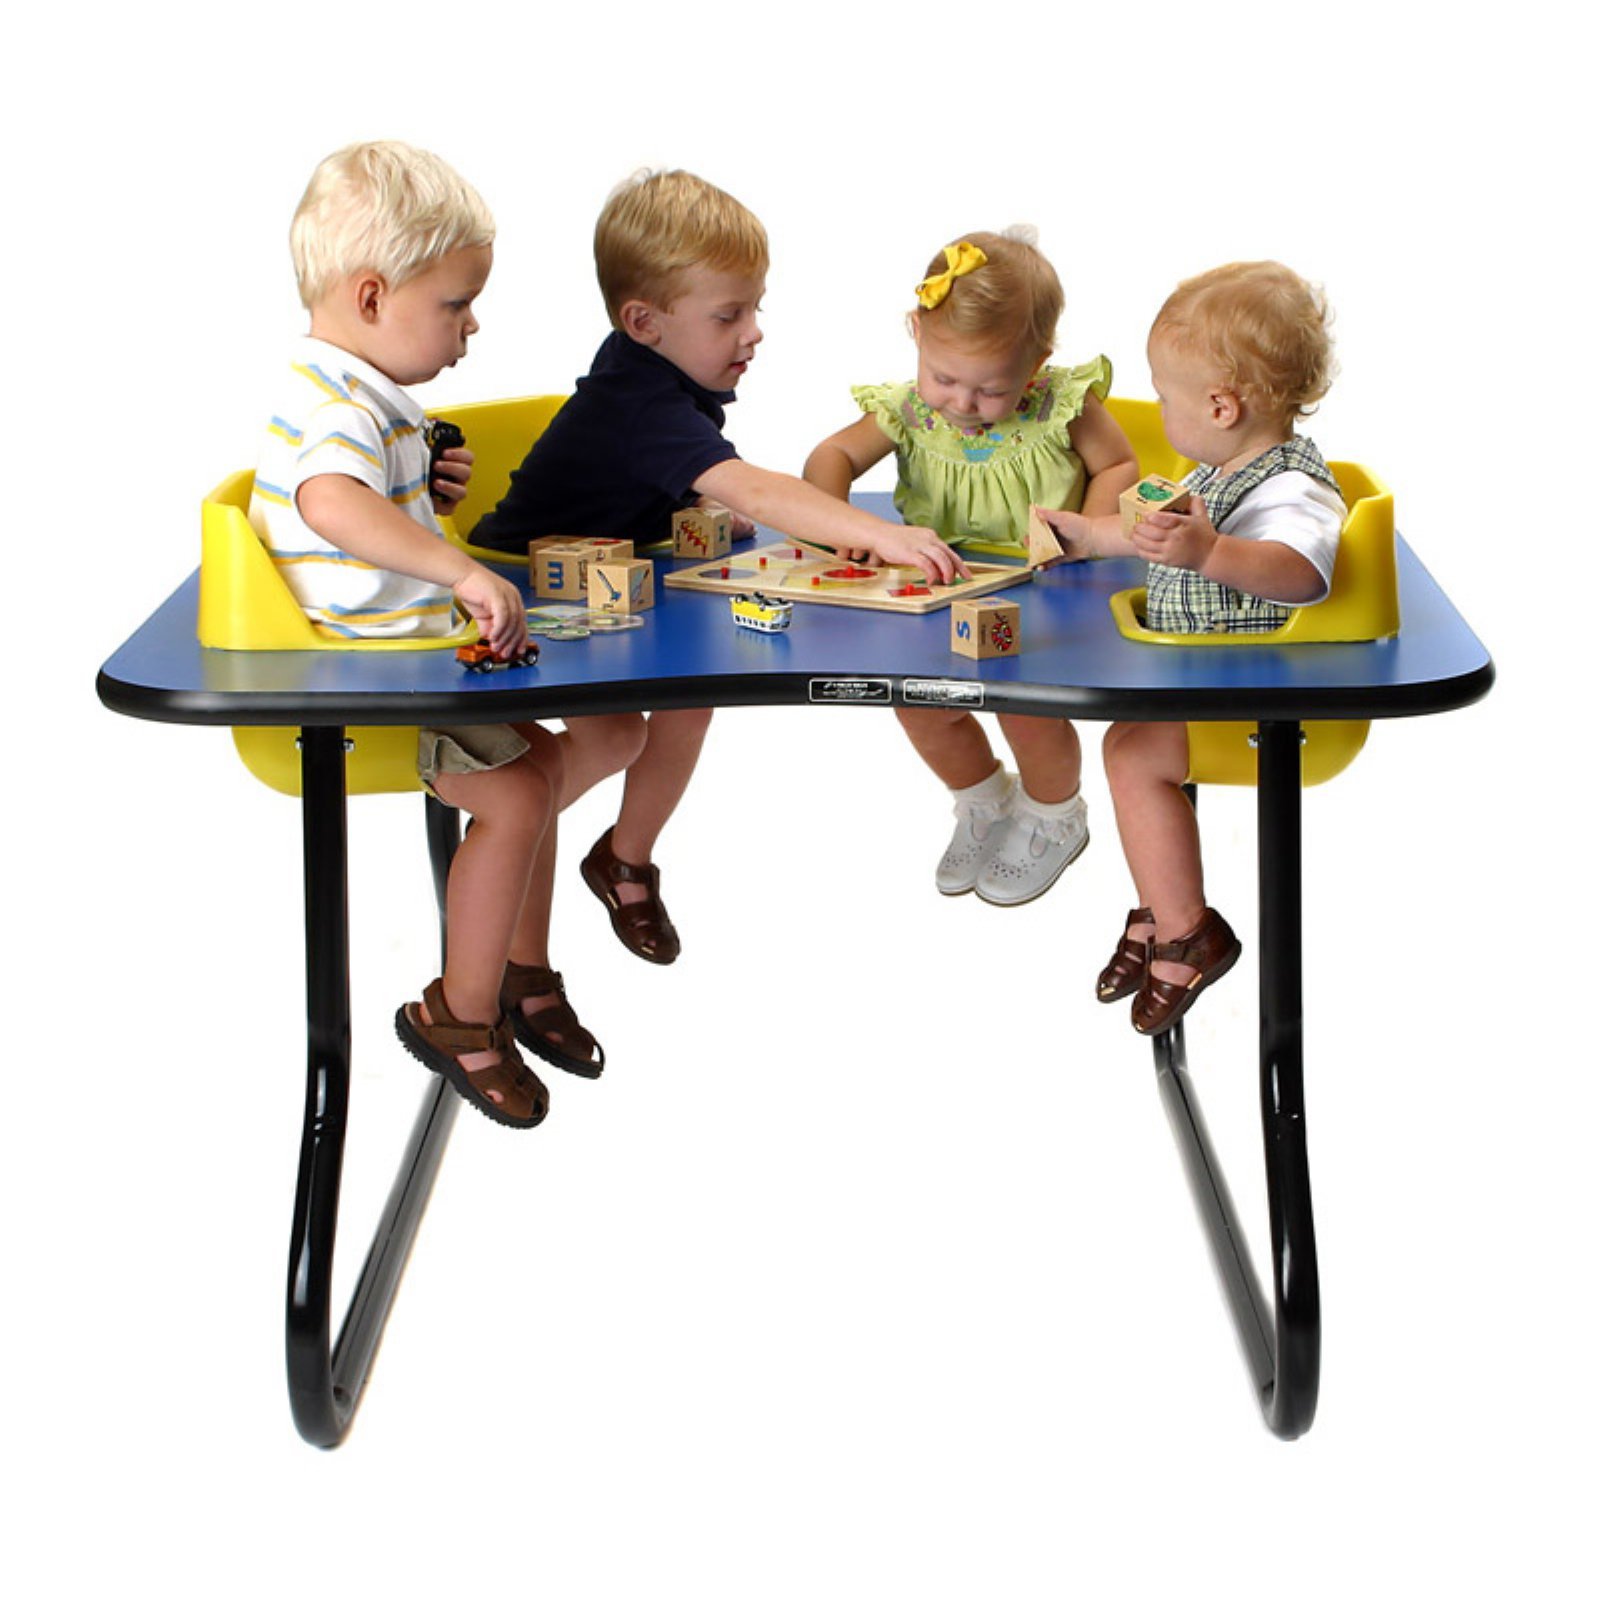 4 Seat Space Saver Toddler Activity Table